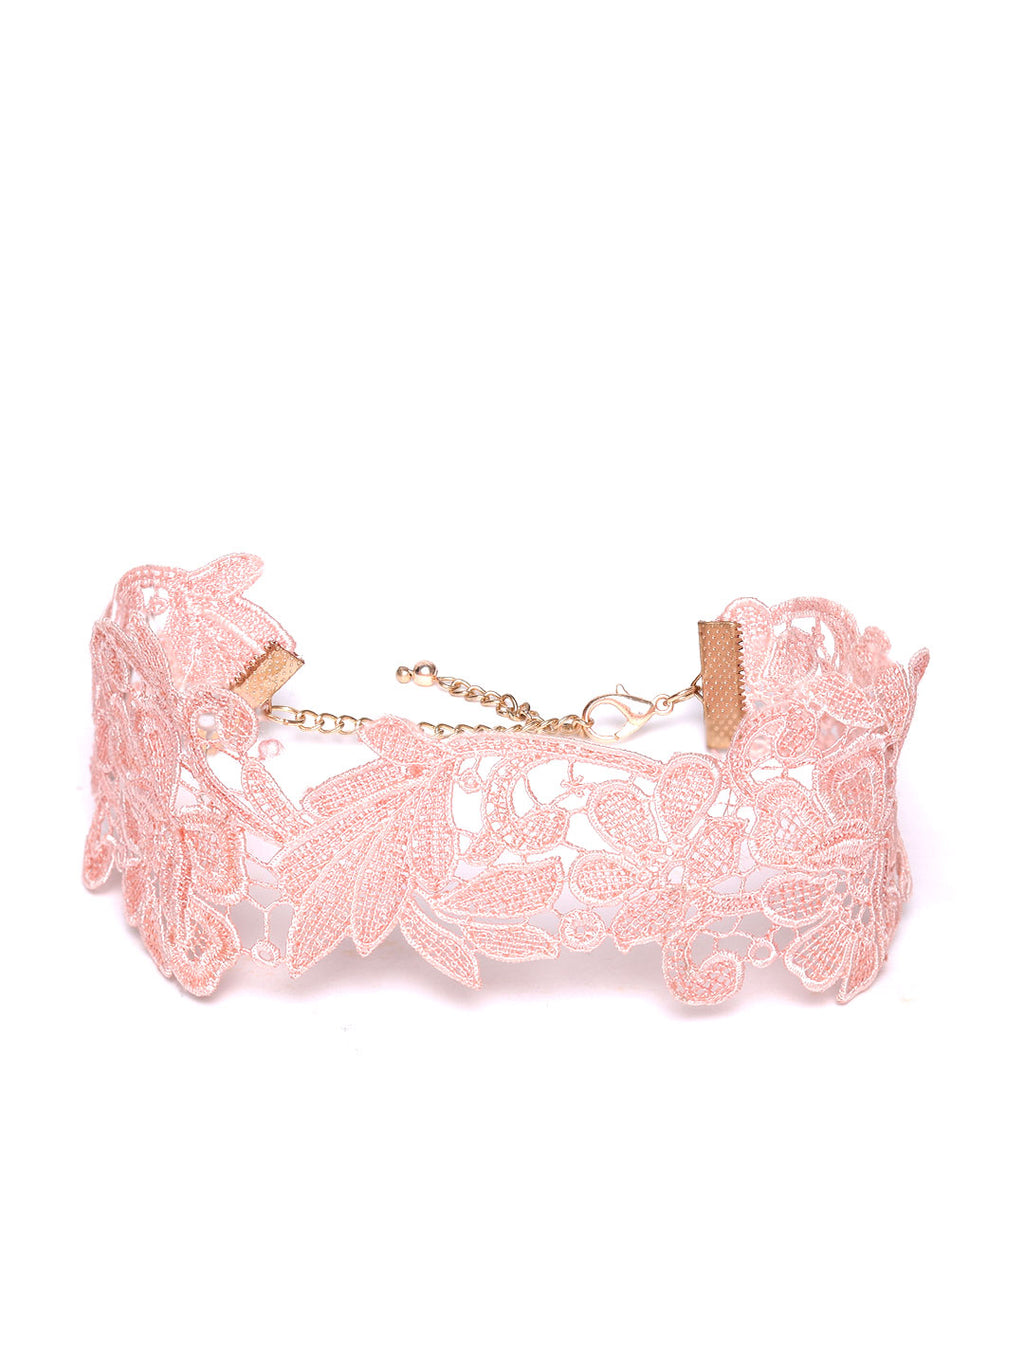 Blueberry Peach colour leaf shape lace choker necklace